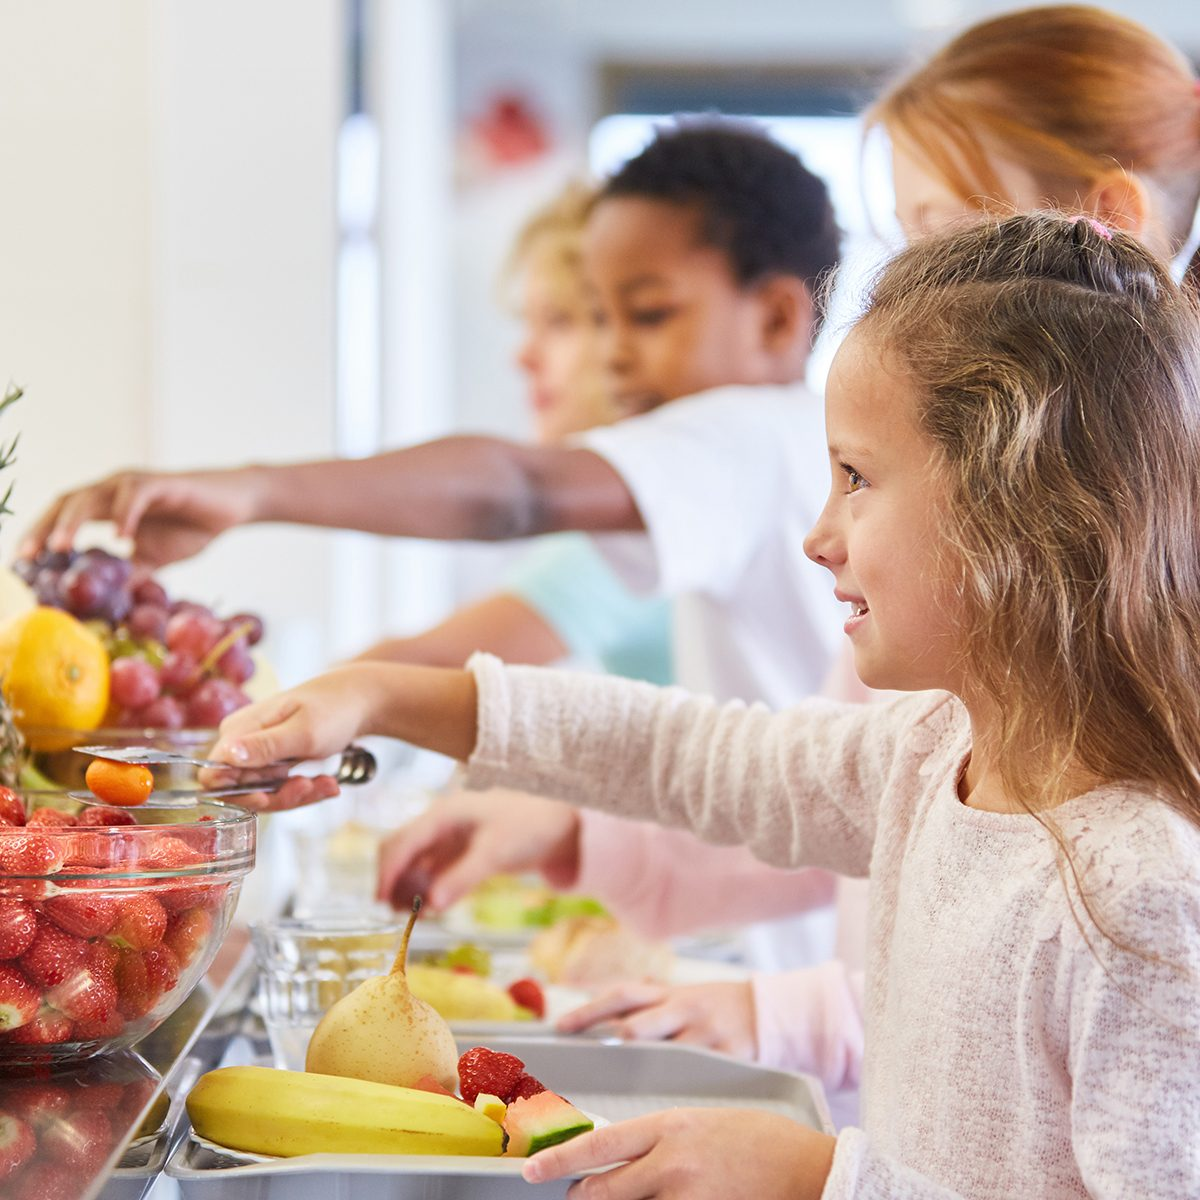 Girl and other kids at the fruit buffet at the cafeteria in elementary school